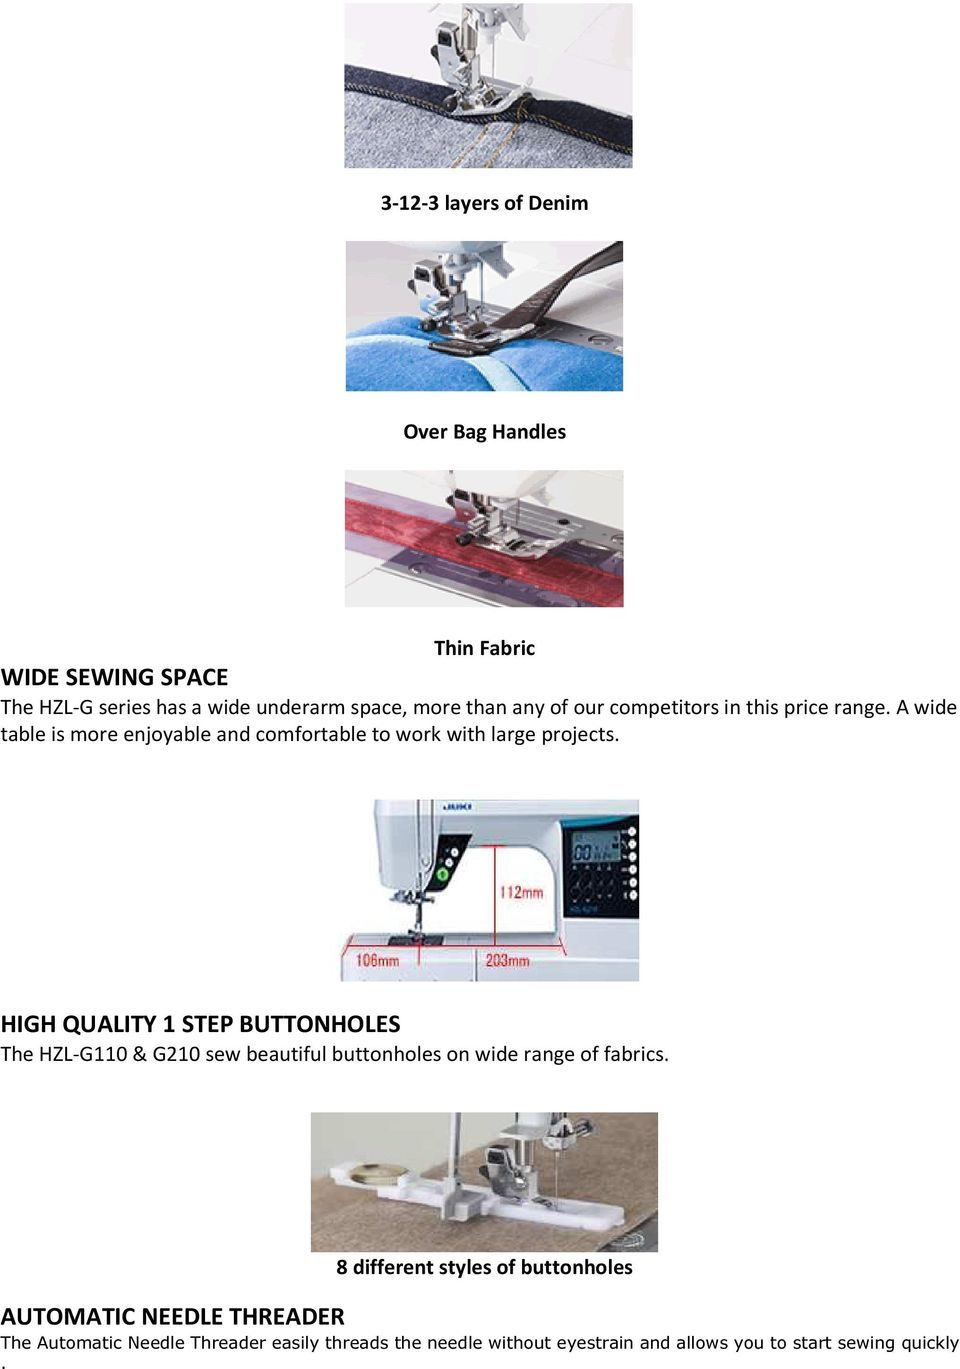 HIGH QUALITY 1 STEP BUTTONHOLES The HZL-G110 & G210 sew beautiful buttonholes on wide range of fabrics.